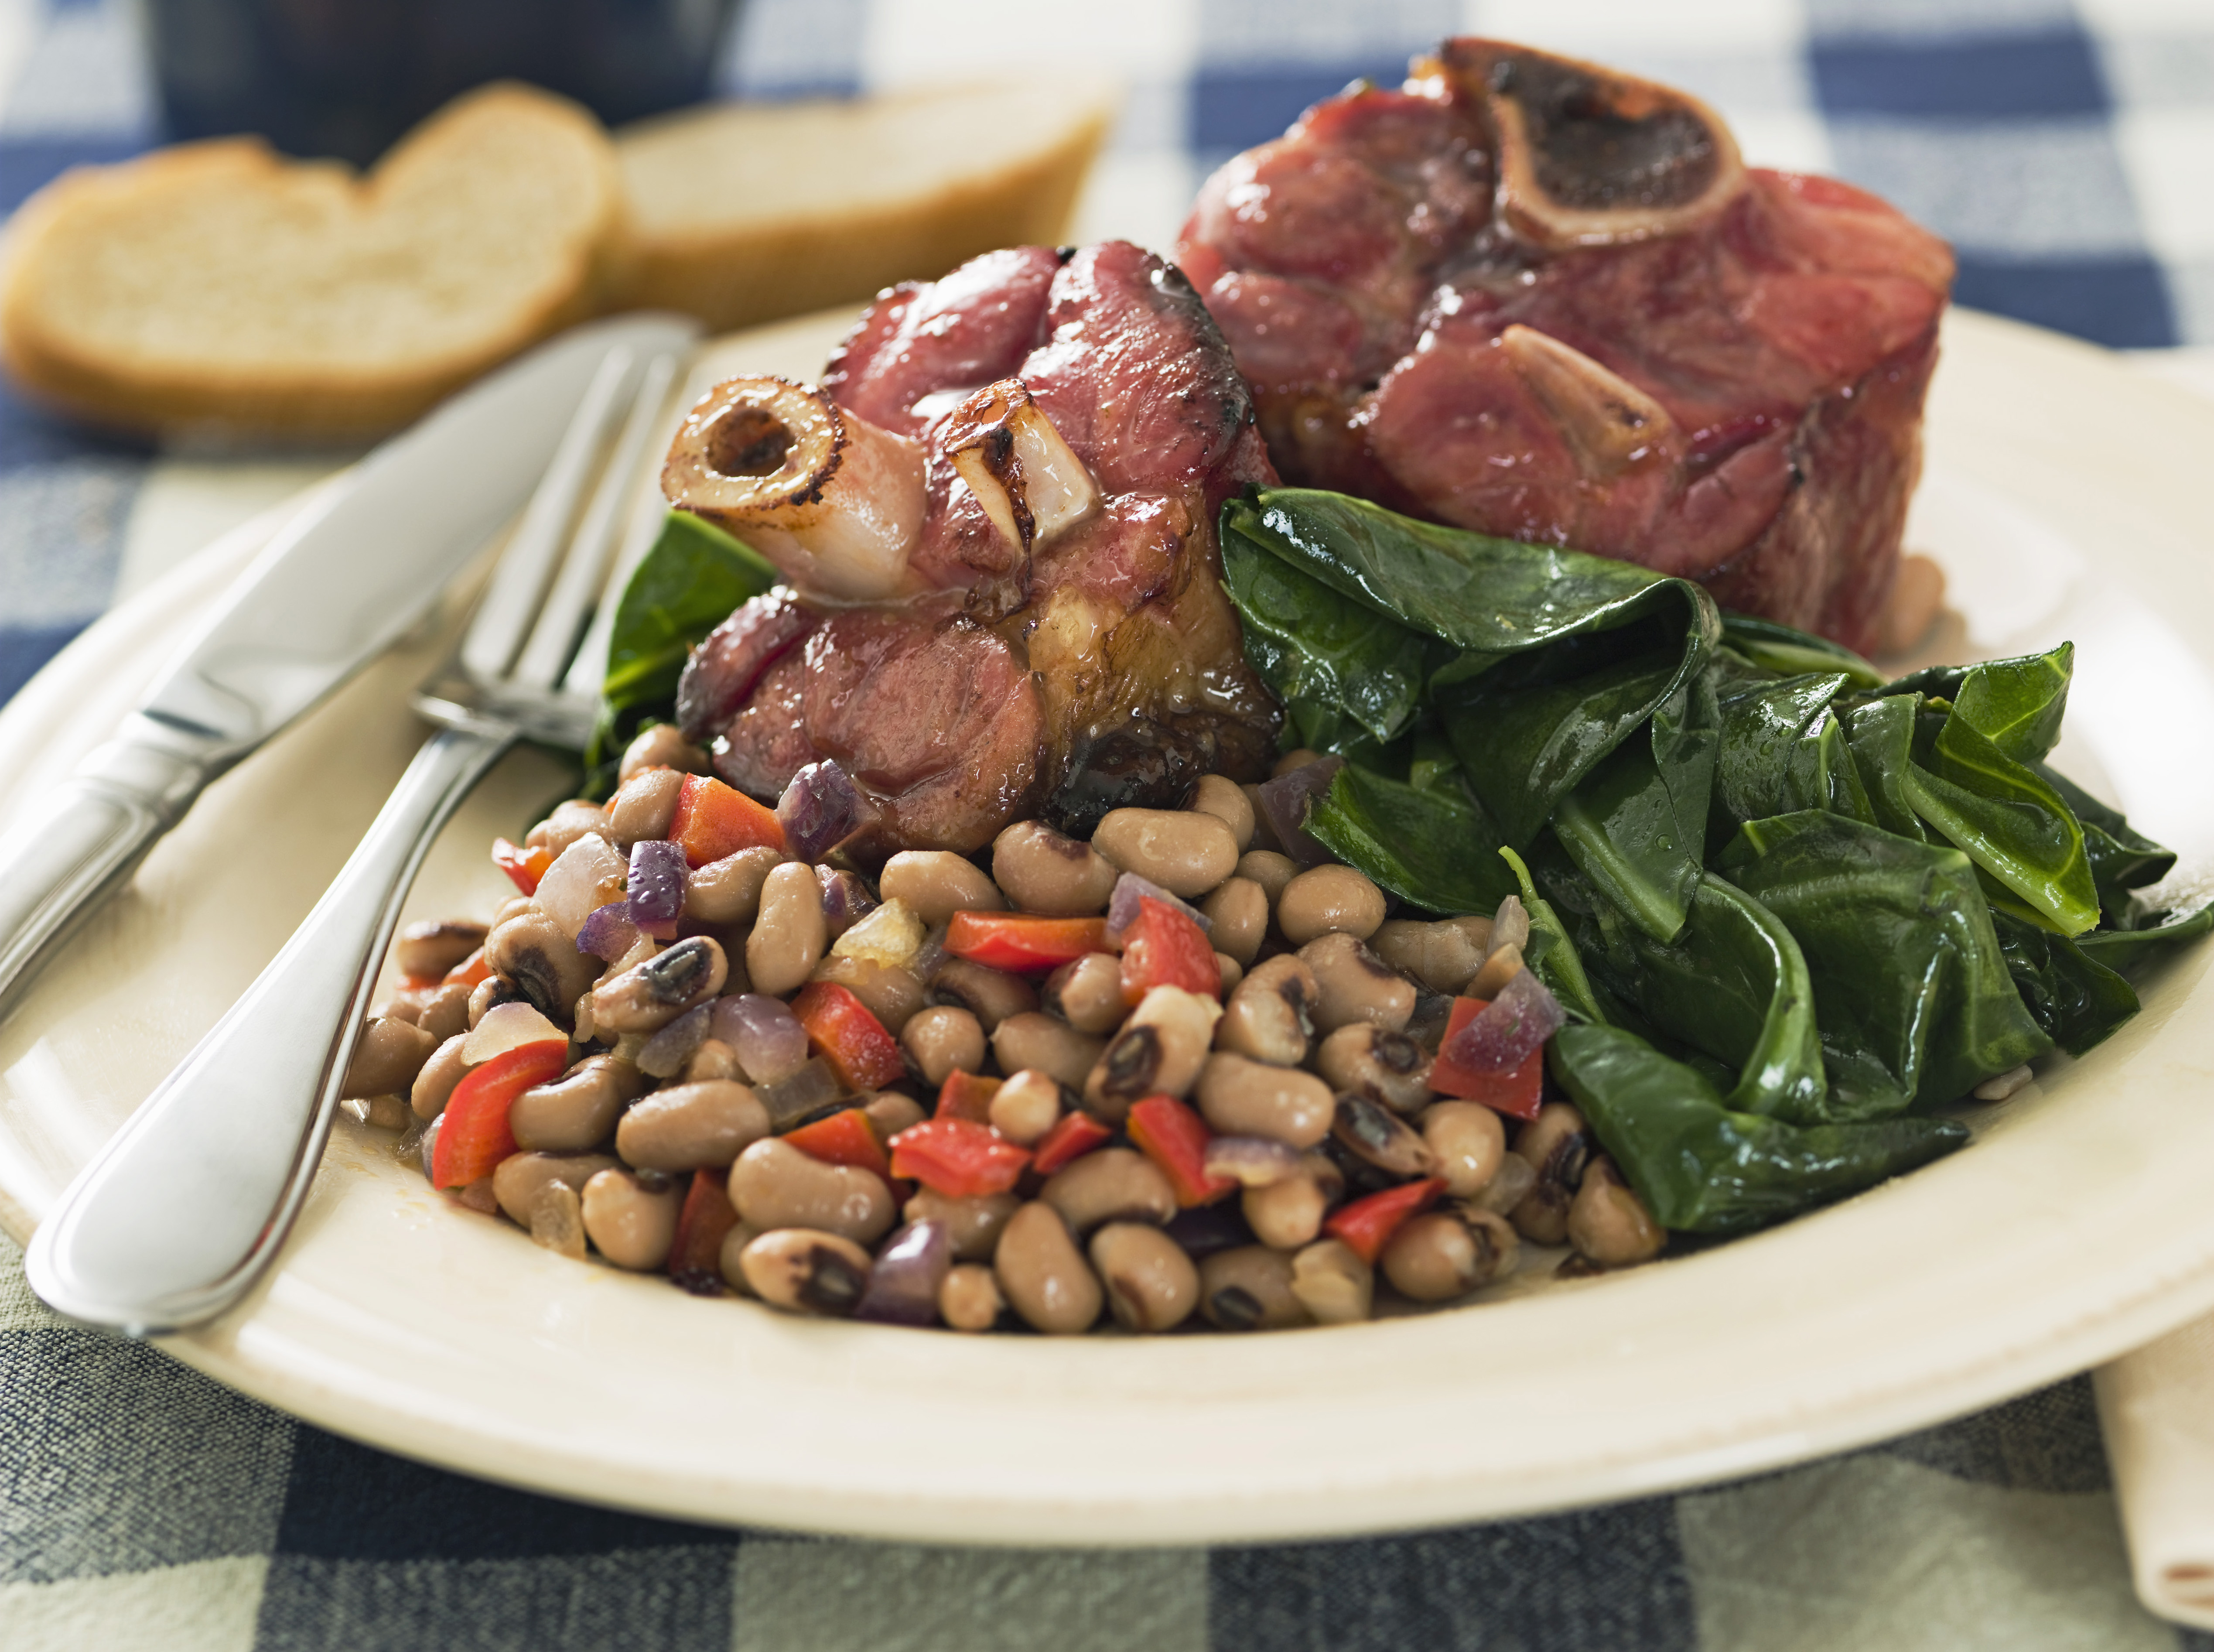 Southern New Year's meal with greens, beans, and ham hocks